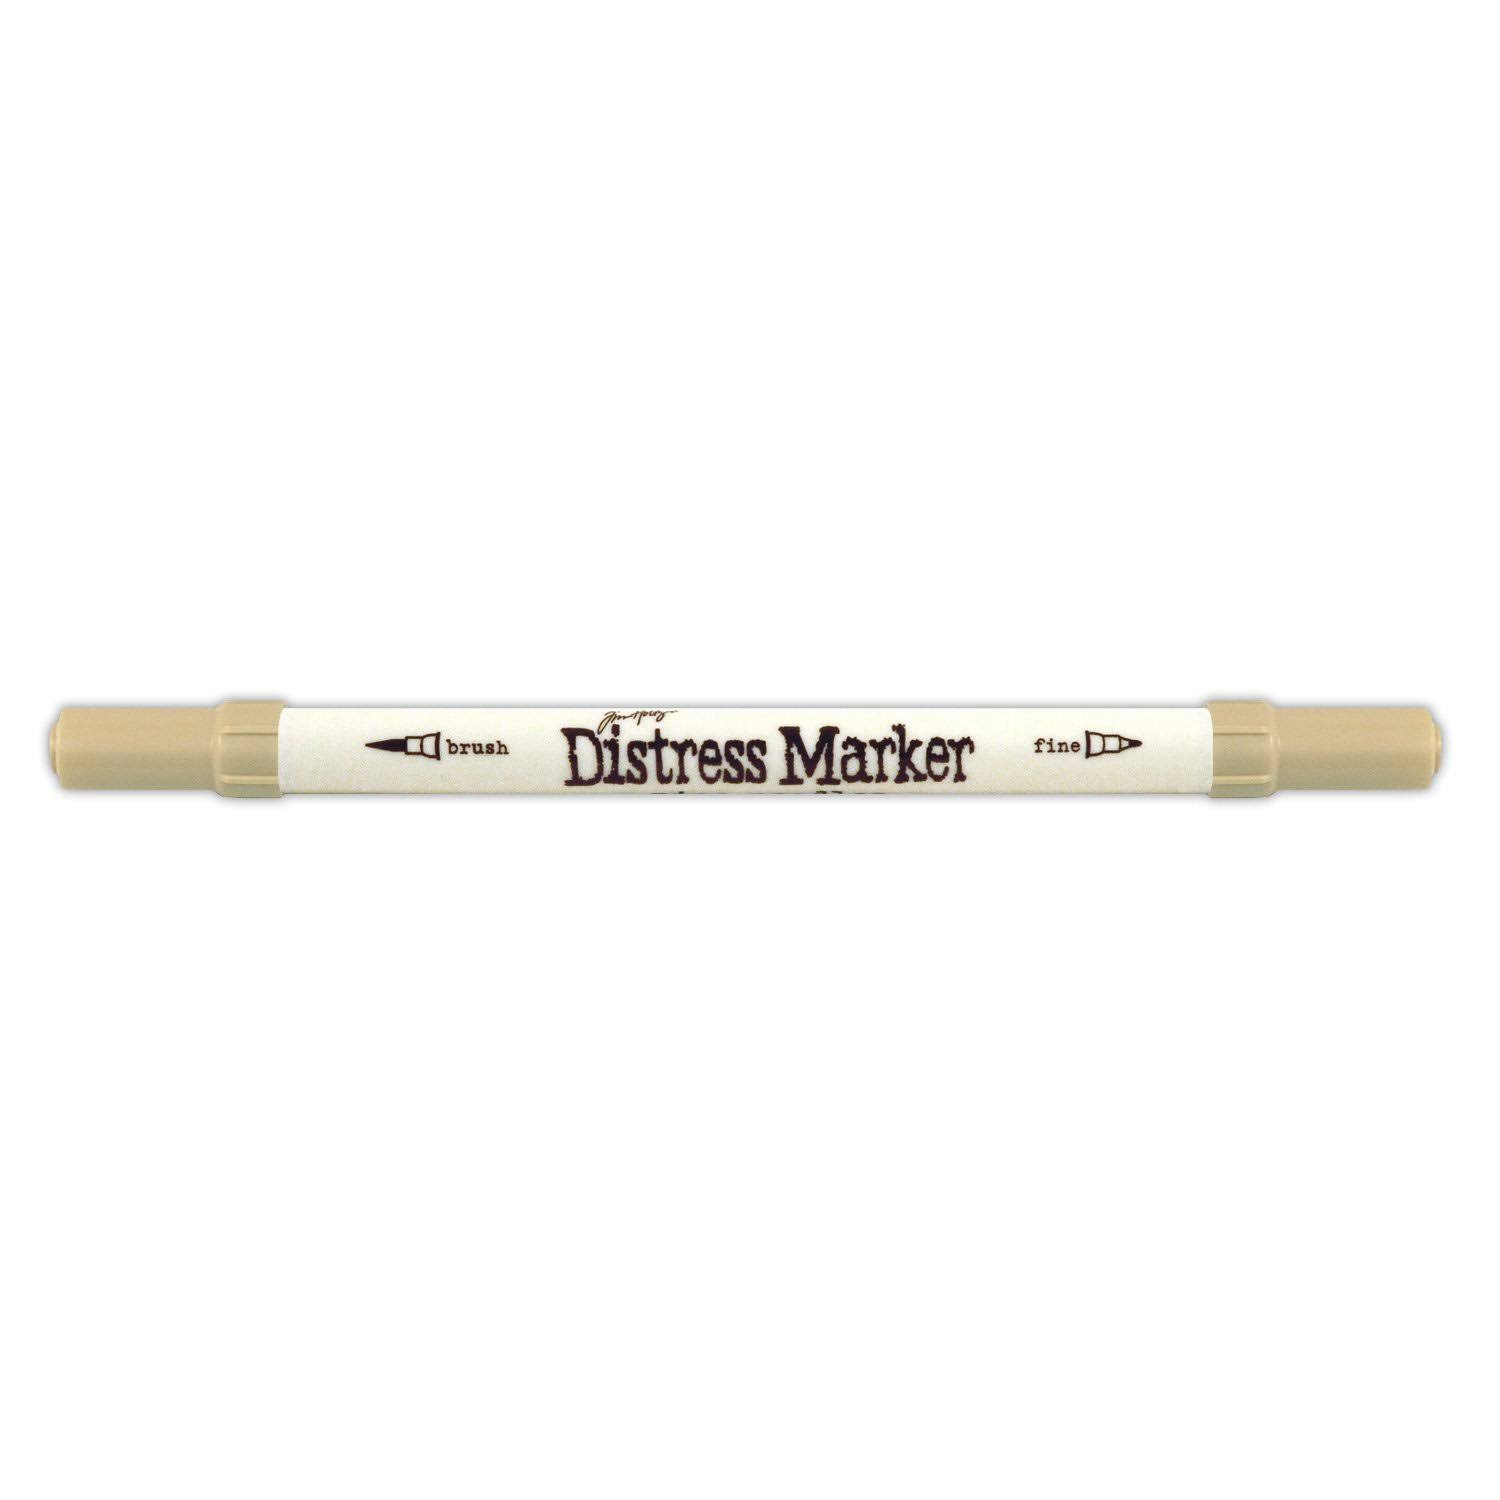 Ranger TDM-32434 Tim Holtz Distress Marker - Antique Linen, Multi-colored